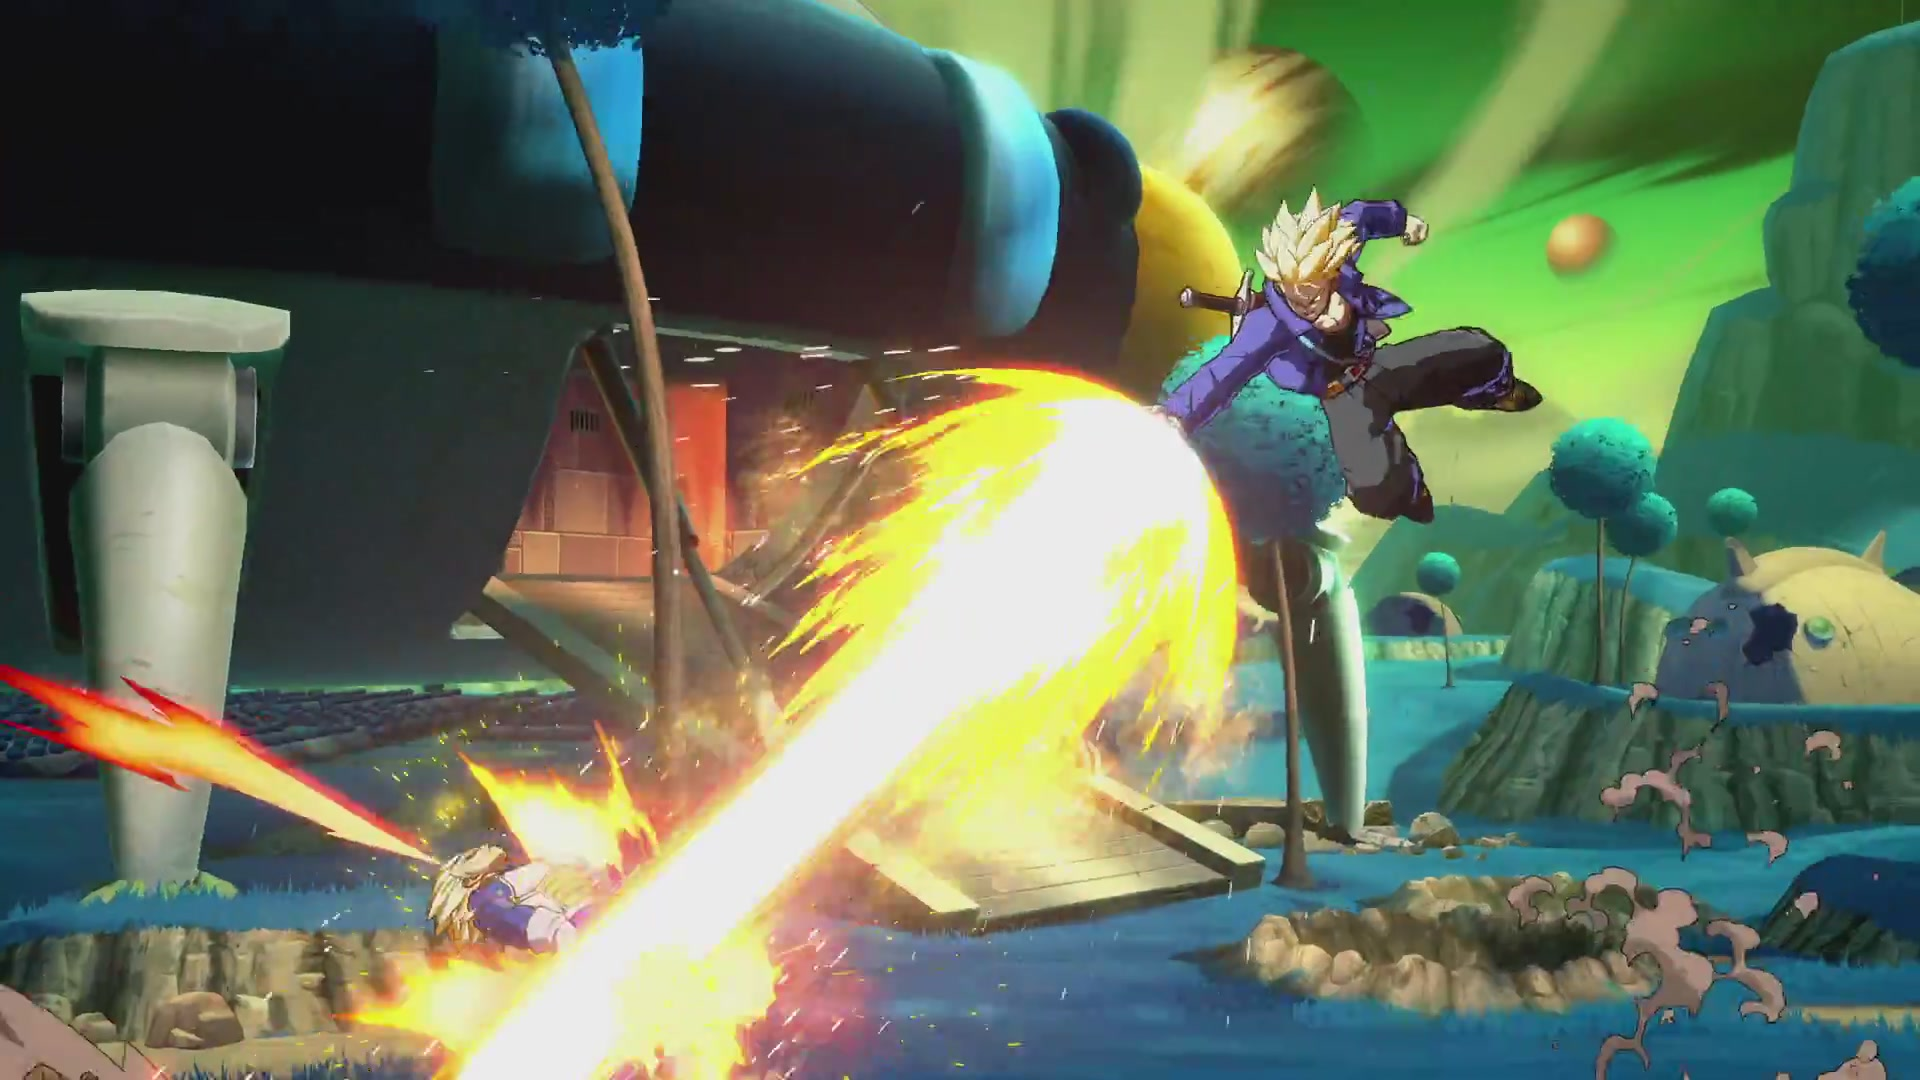 Trunks in Dragon Ball FighterZ 6 out of 12 image gallery